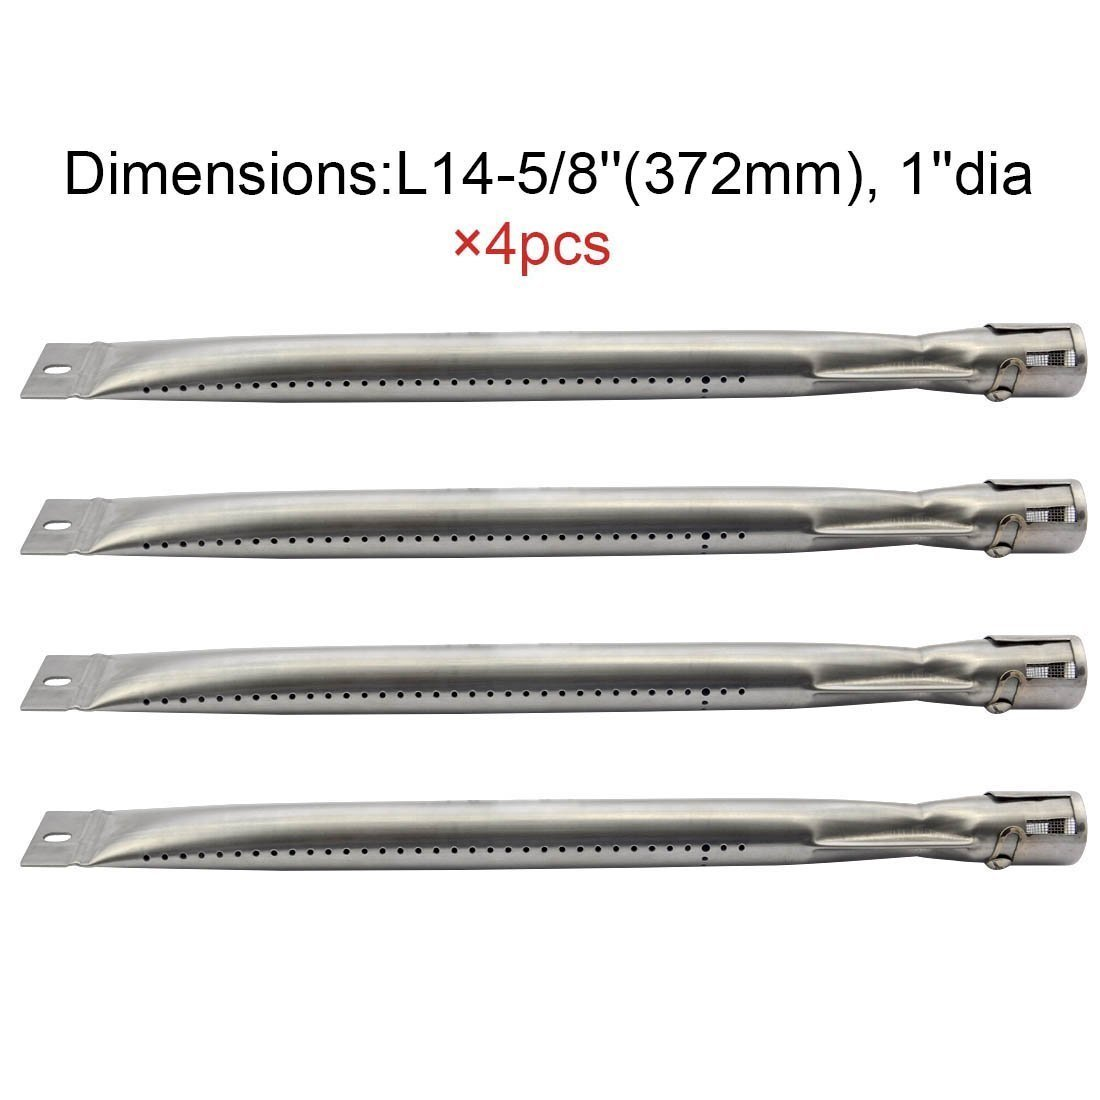 BBQ Energy Grill Burners 14251 (4-pack) Universal Straight Stainless Steel Pipe Burner for BBQ Tek, Bond, Brinkmann Part, Grill King Part, Master Cook, Presidents Choice, Lowes Model Grills